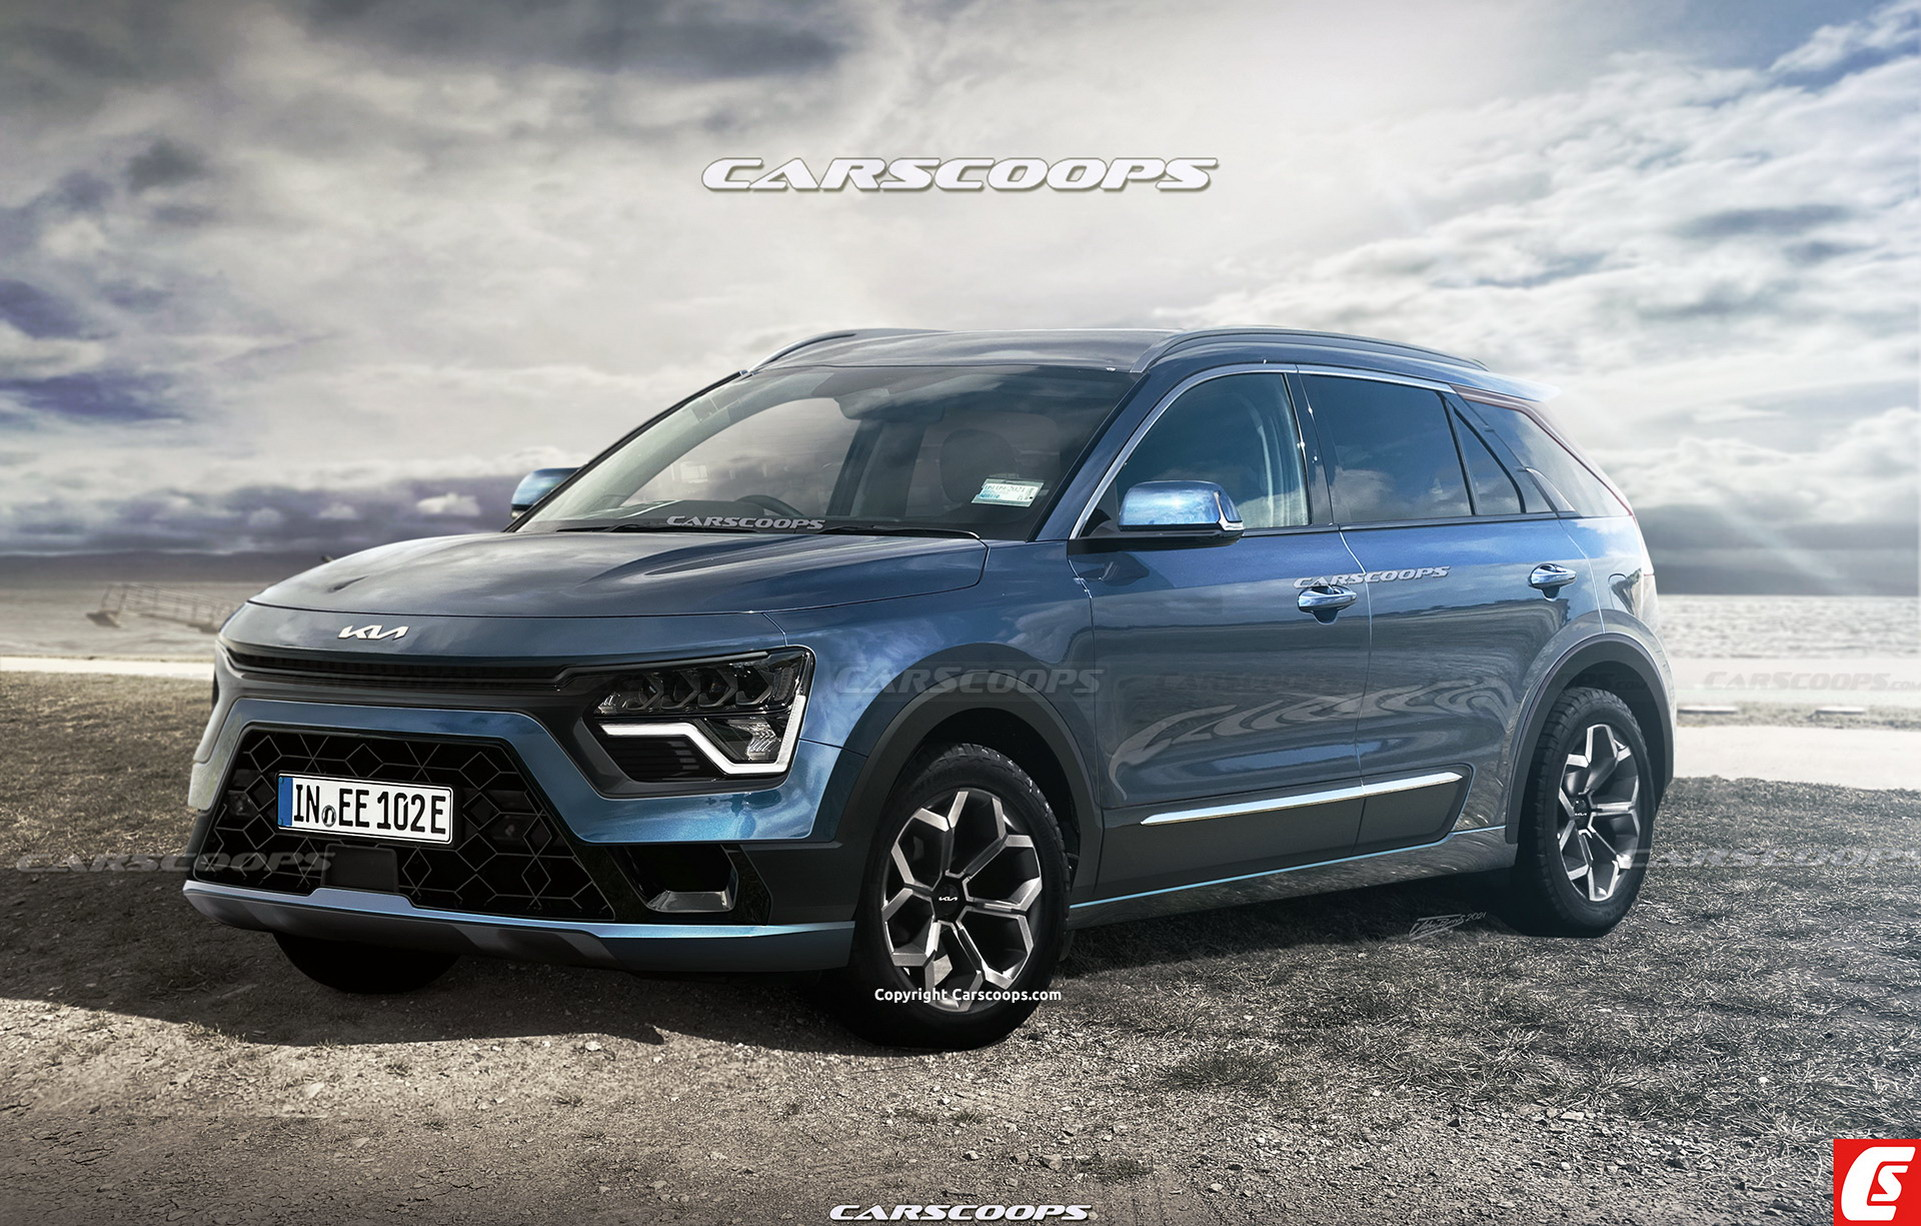 2022 Kia Niro Bold New Looks Powertrains Everything Else We Know Carscoops